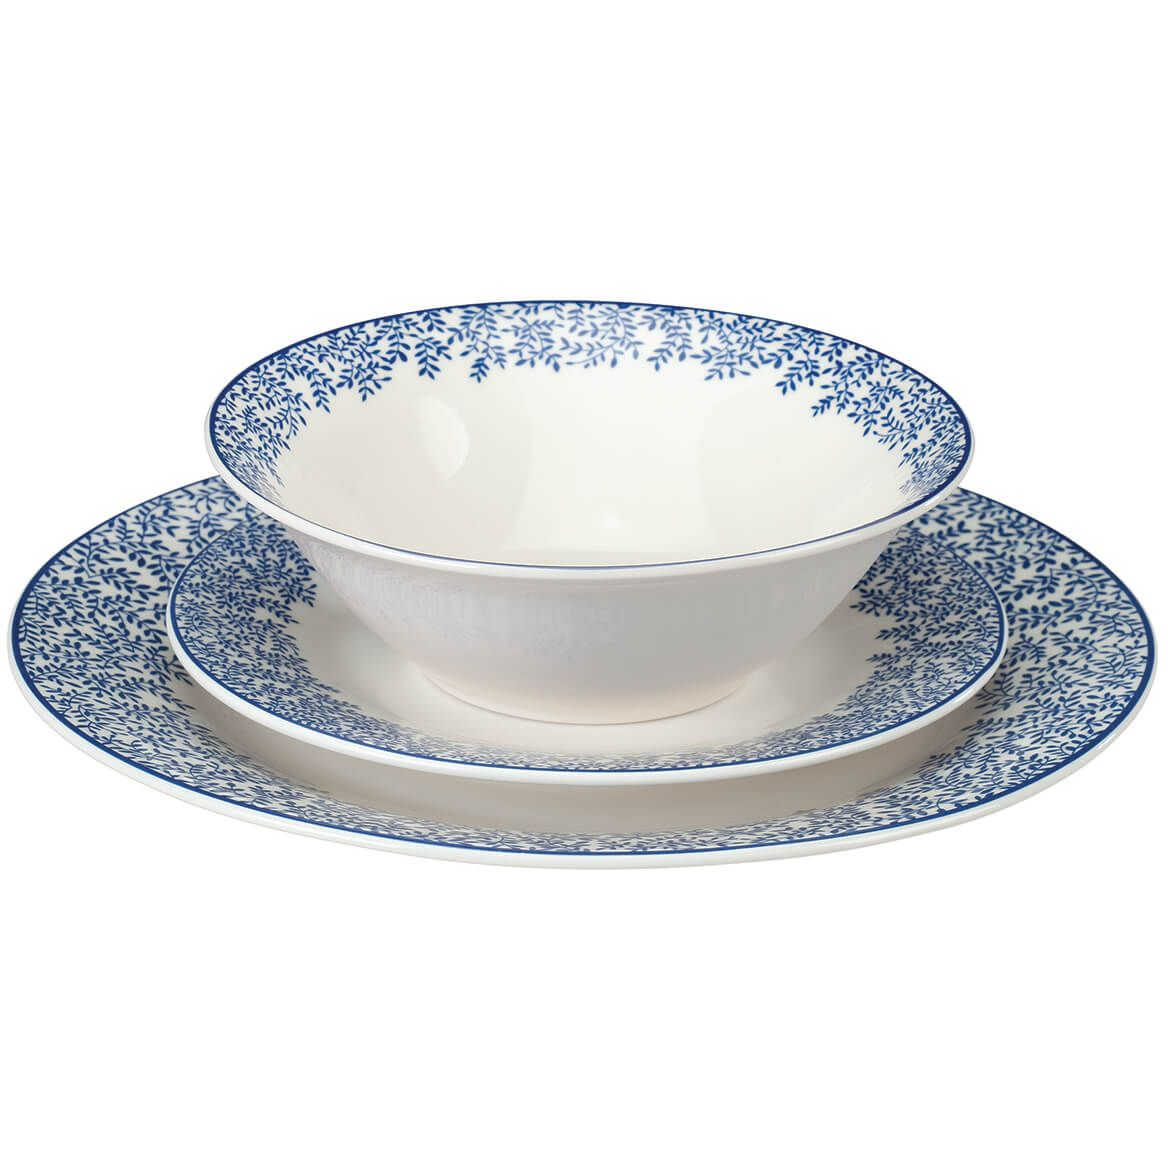 Blue Chantilly Porcelain Dinnerware by William Roberts 12-Pc. set-369661